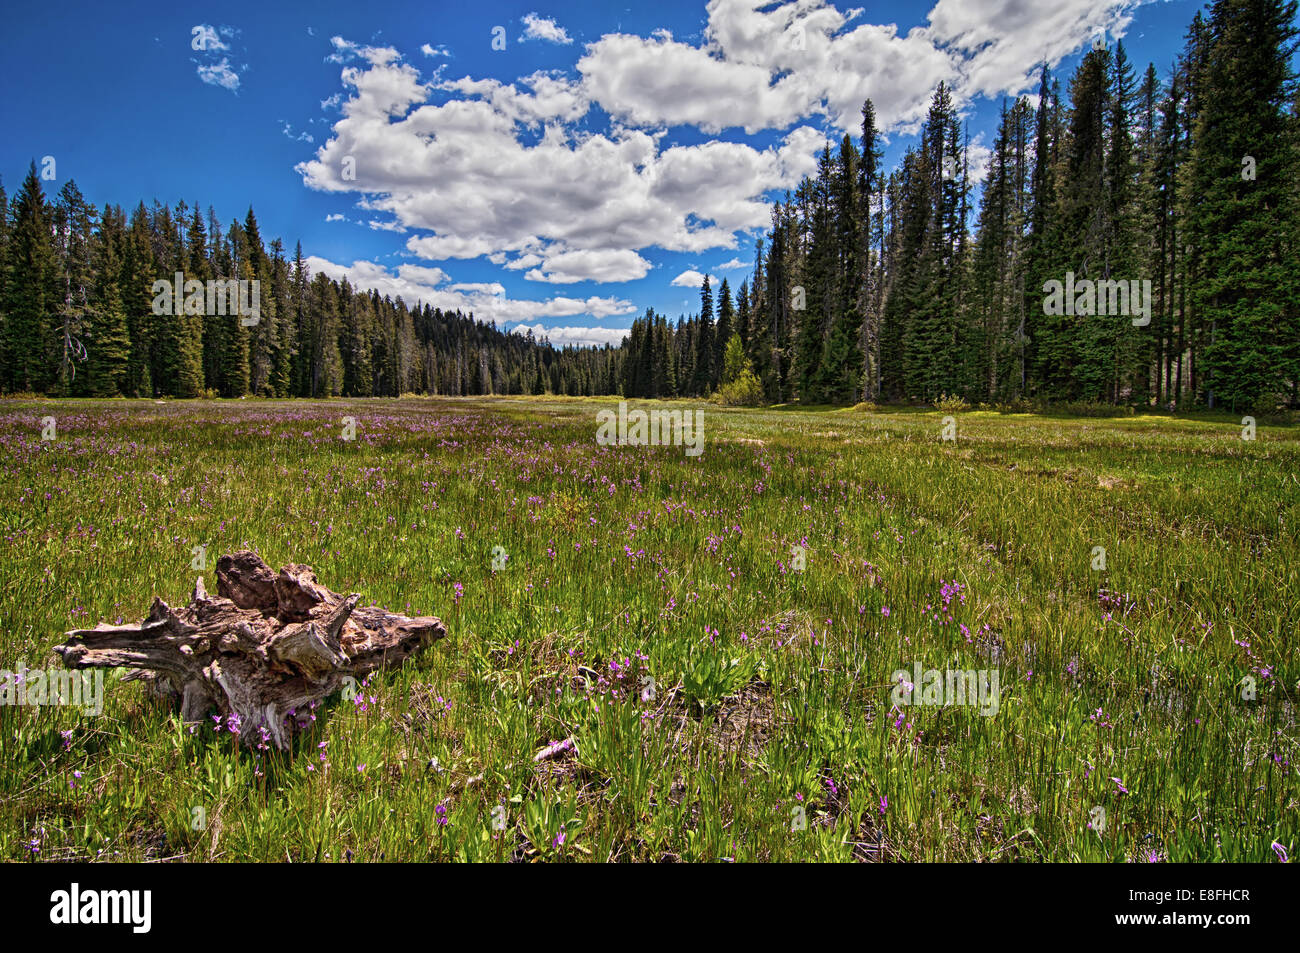 USA, Idaho, Boise, Boise National Forest, Long Creek Road, Field in Mountains - Stock Image